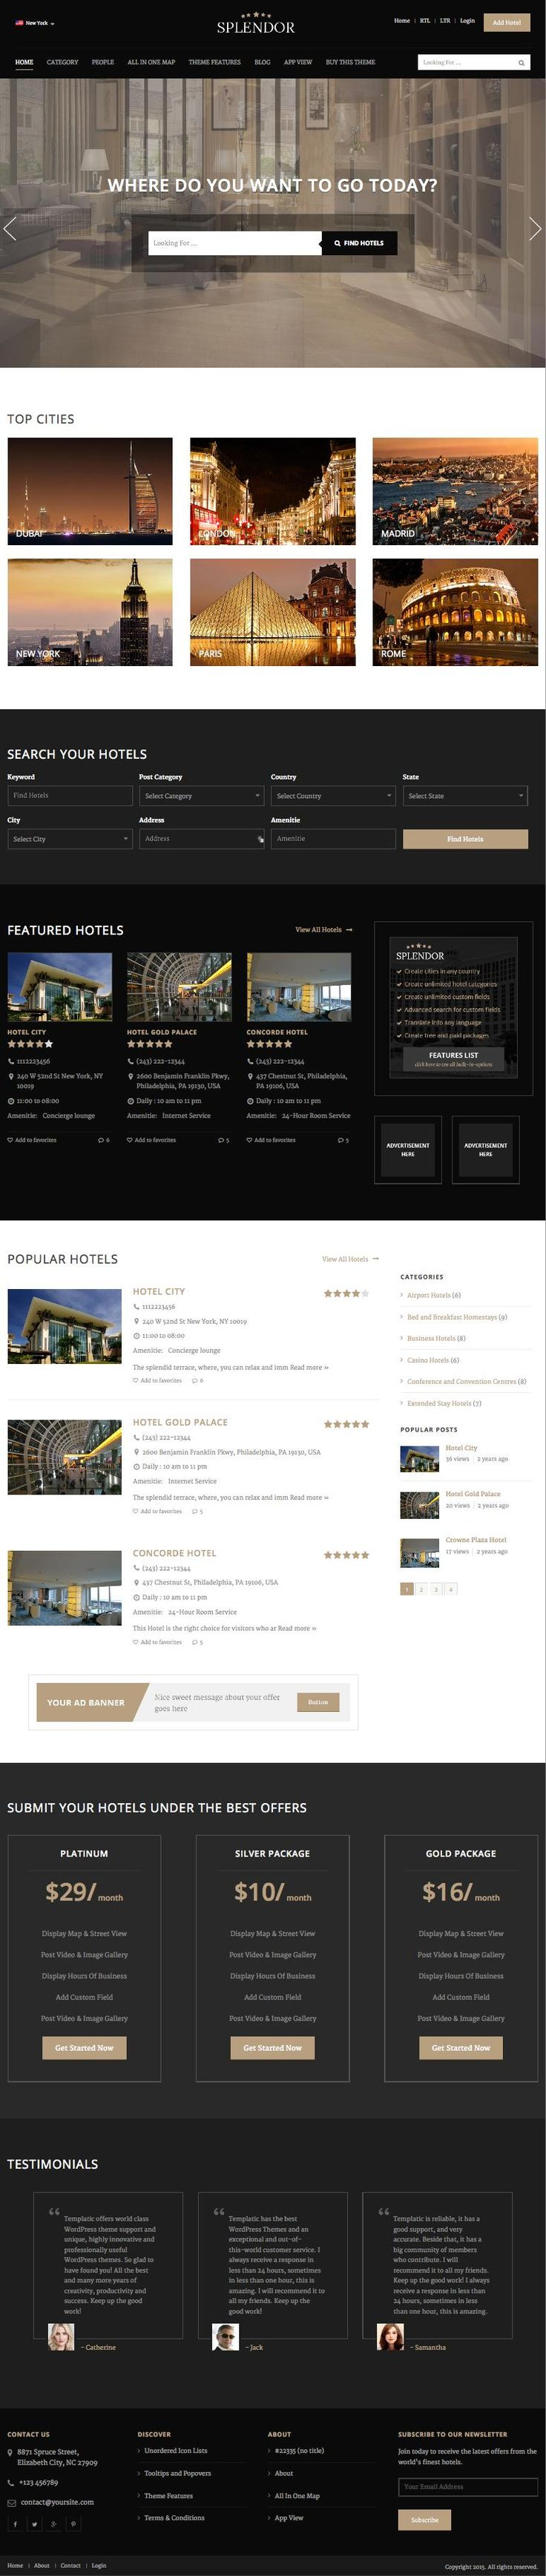 Splendor wordpress hotel directory listings theme